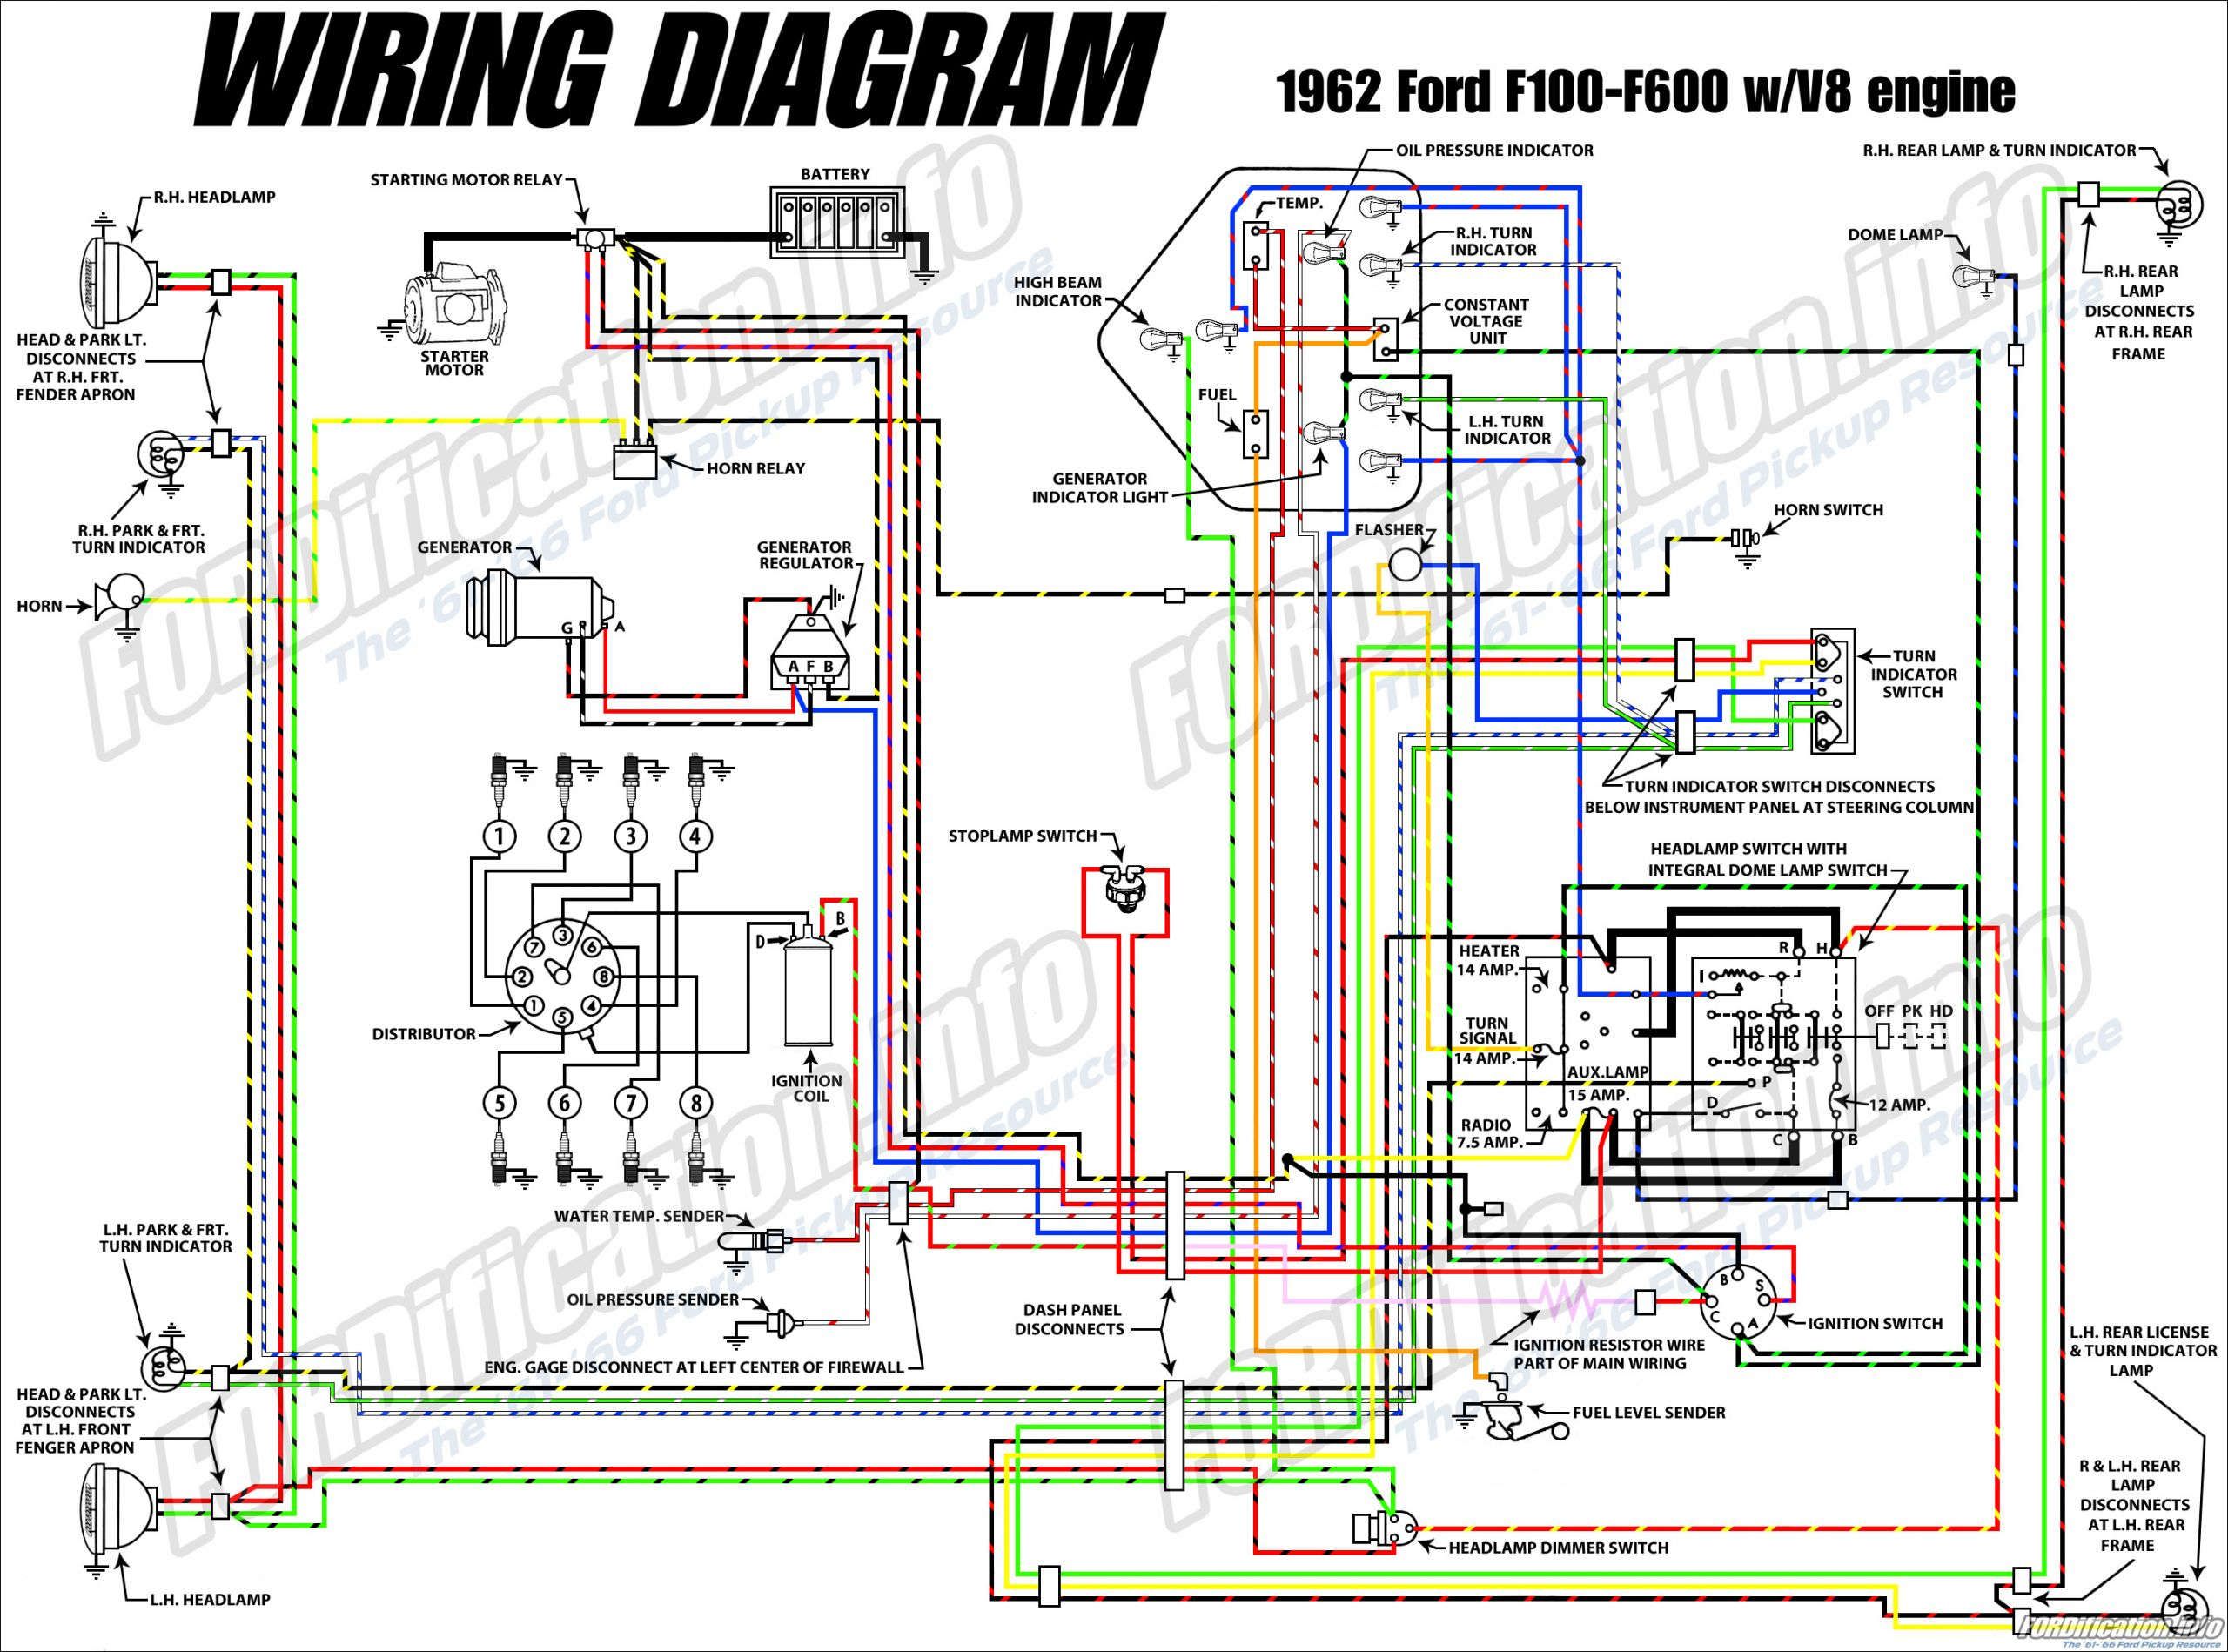 Ford F100 Wiring Schematic - Wiring Diagram